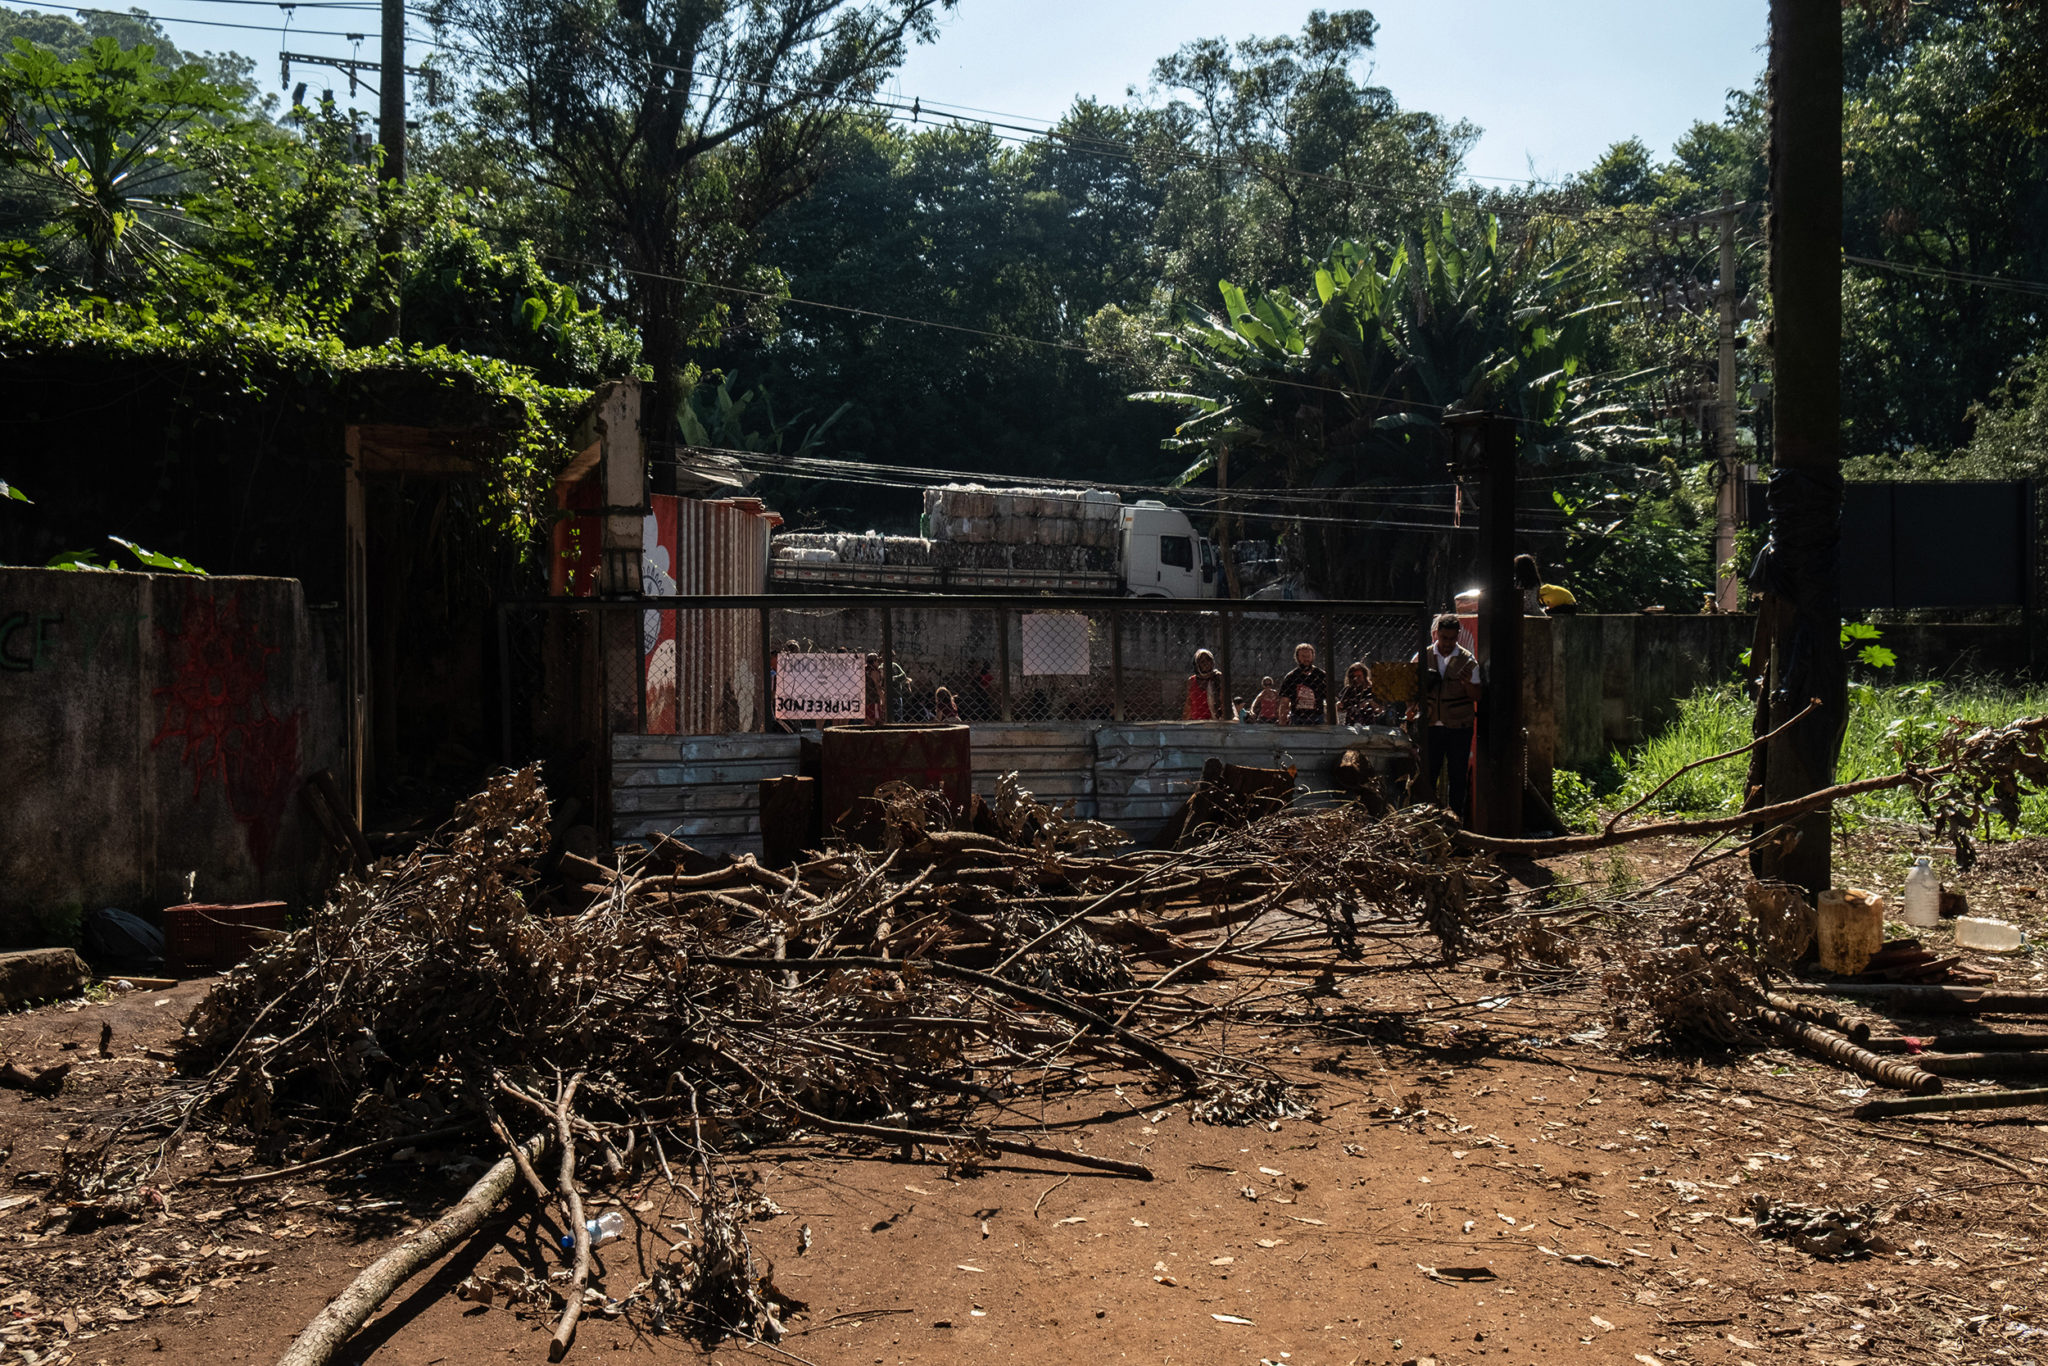 A view of the lot in dispute between Guarani indigenous and Tenda construction company from inside. Guarani indigenous put trees in front of the gate to enable the police from entering inside the area.Image by Tommaso Prottifor Mongabay